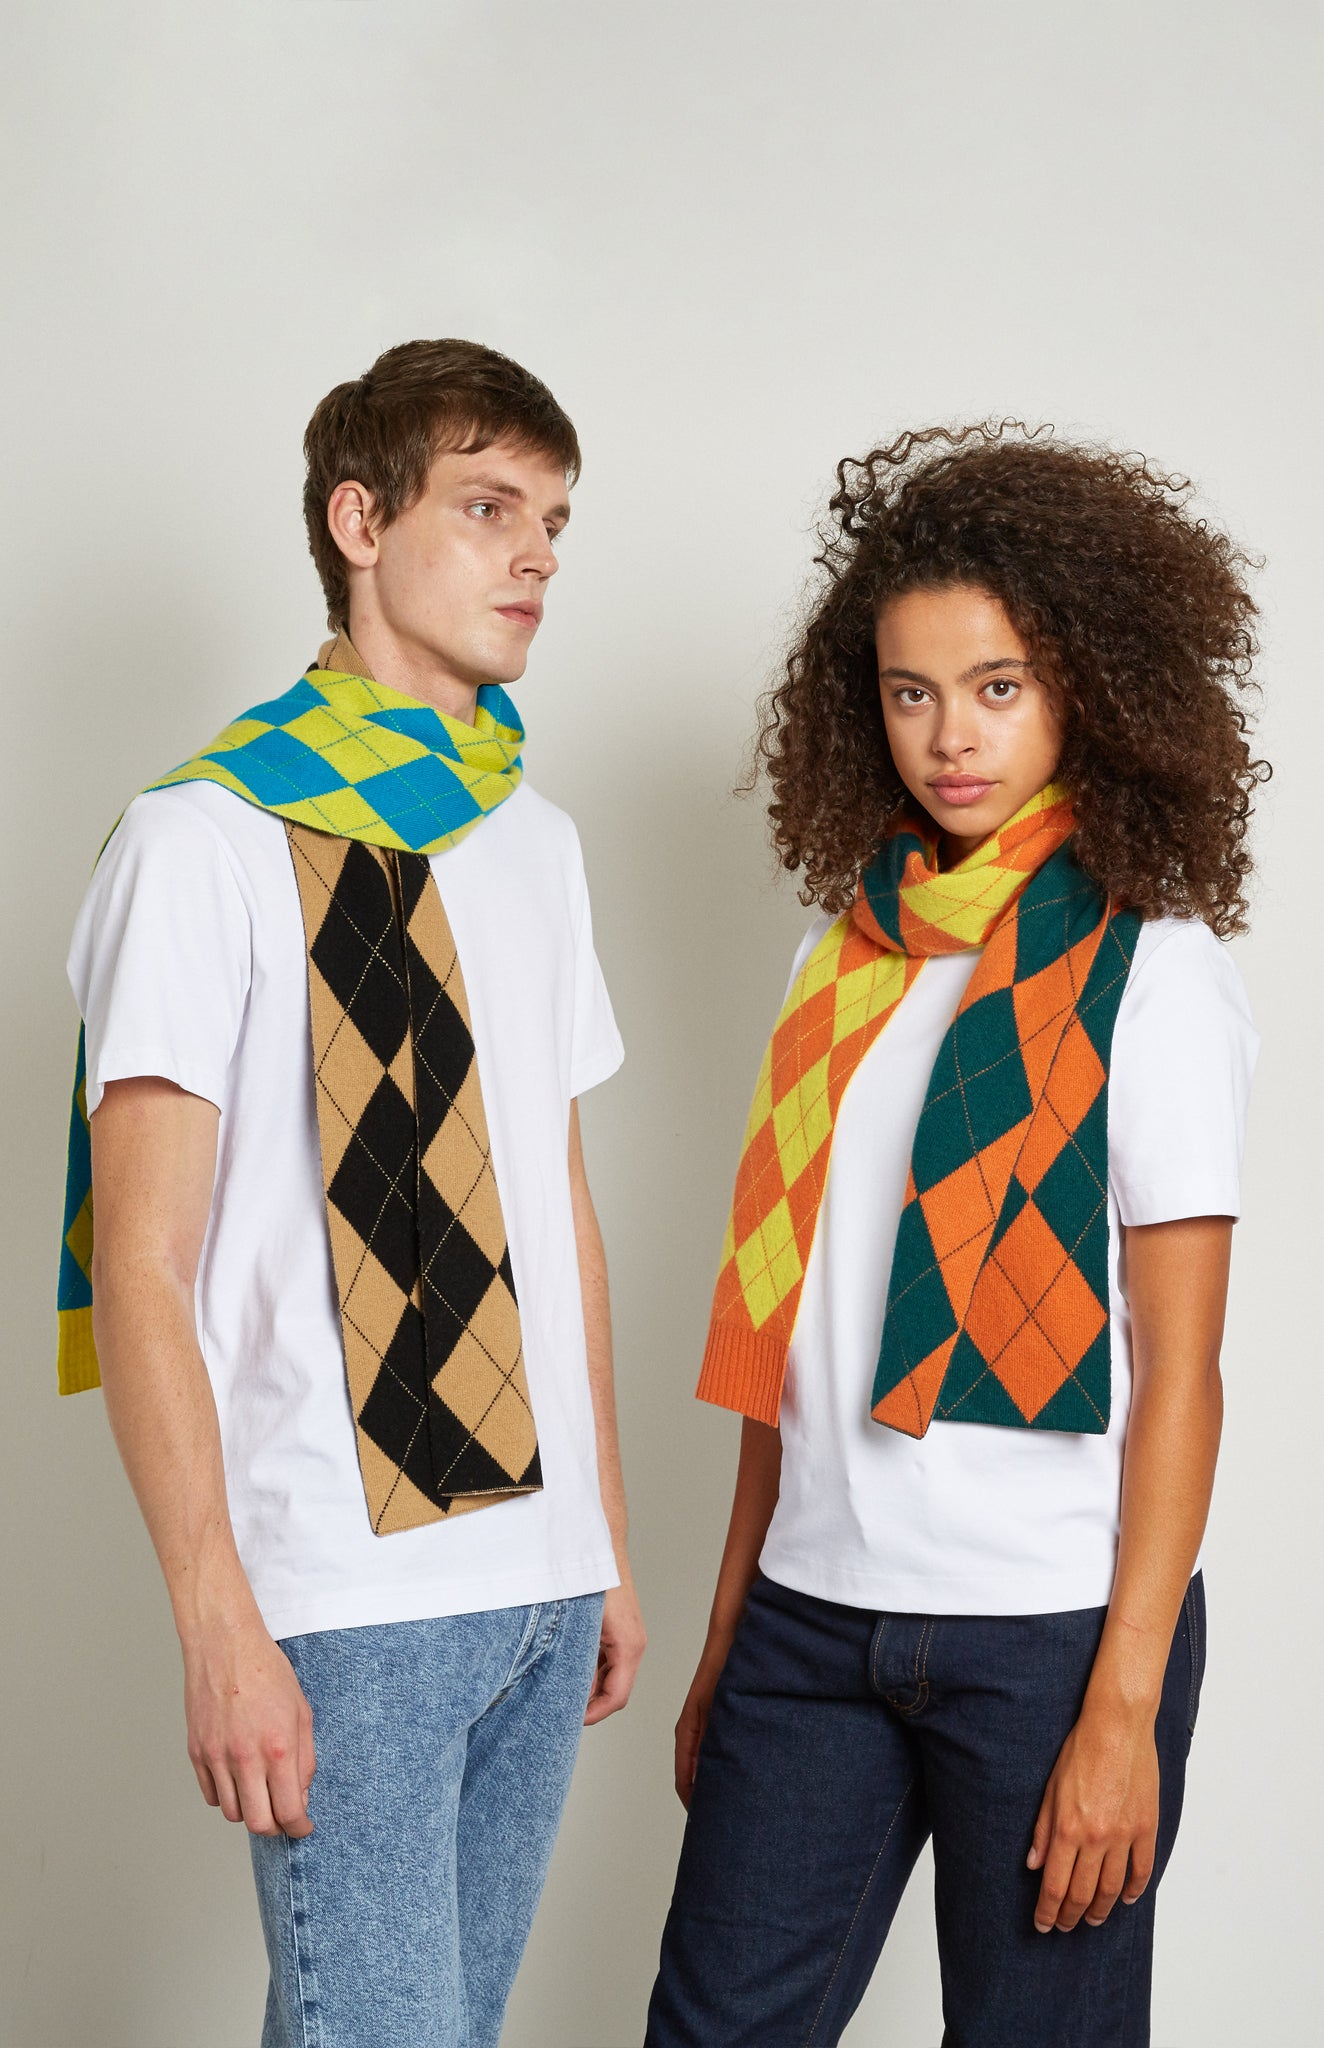 Pringle Reissued Patched Argyle Scarf In Green/Orange on models